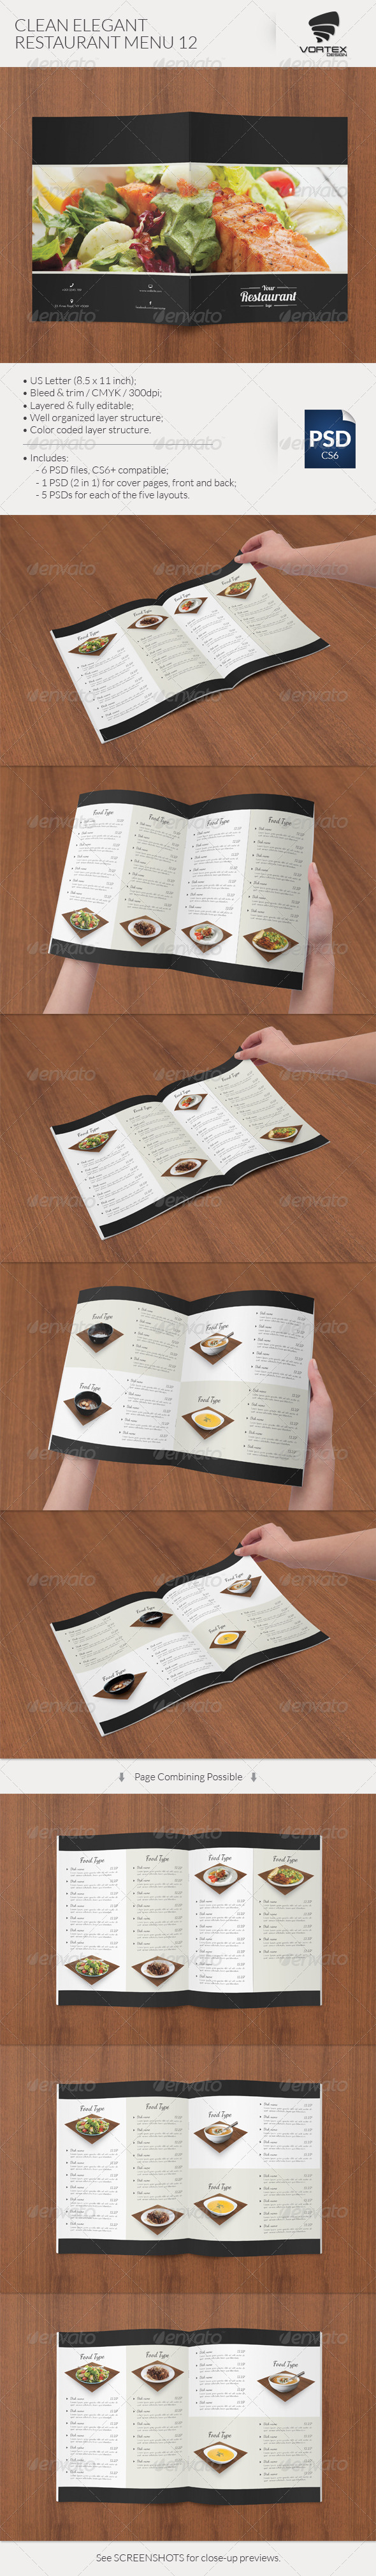 GraphicRiver Clean Elegant Restaurant Menu 12 8351495